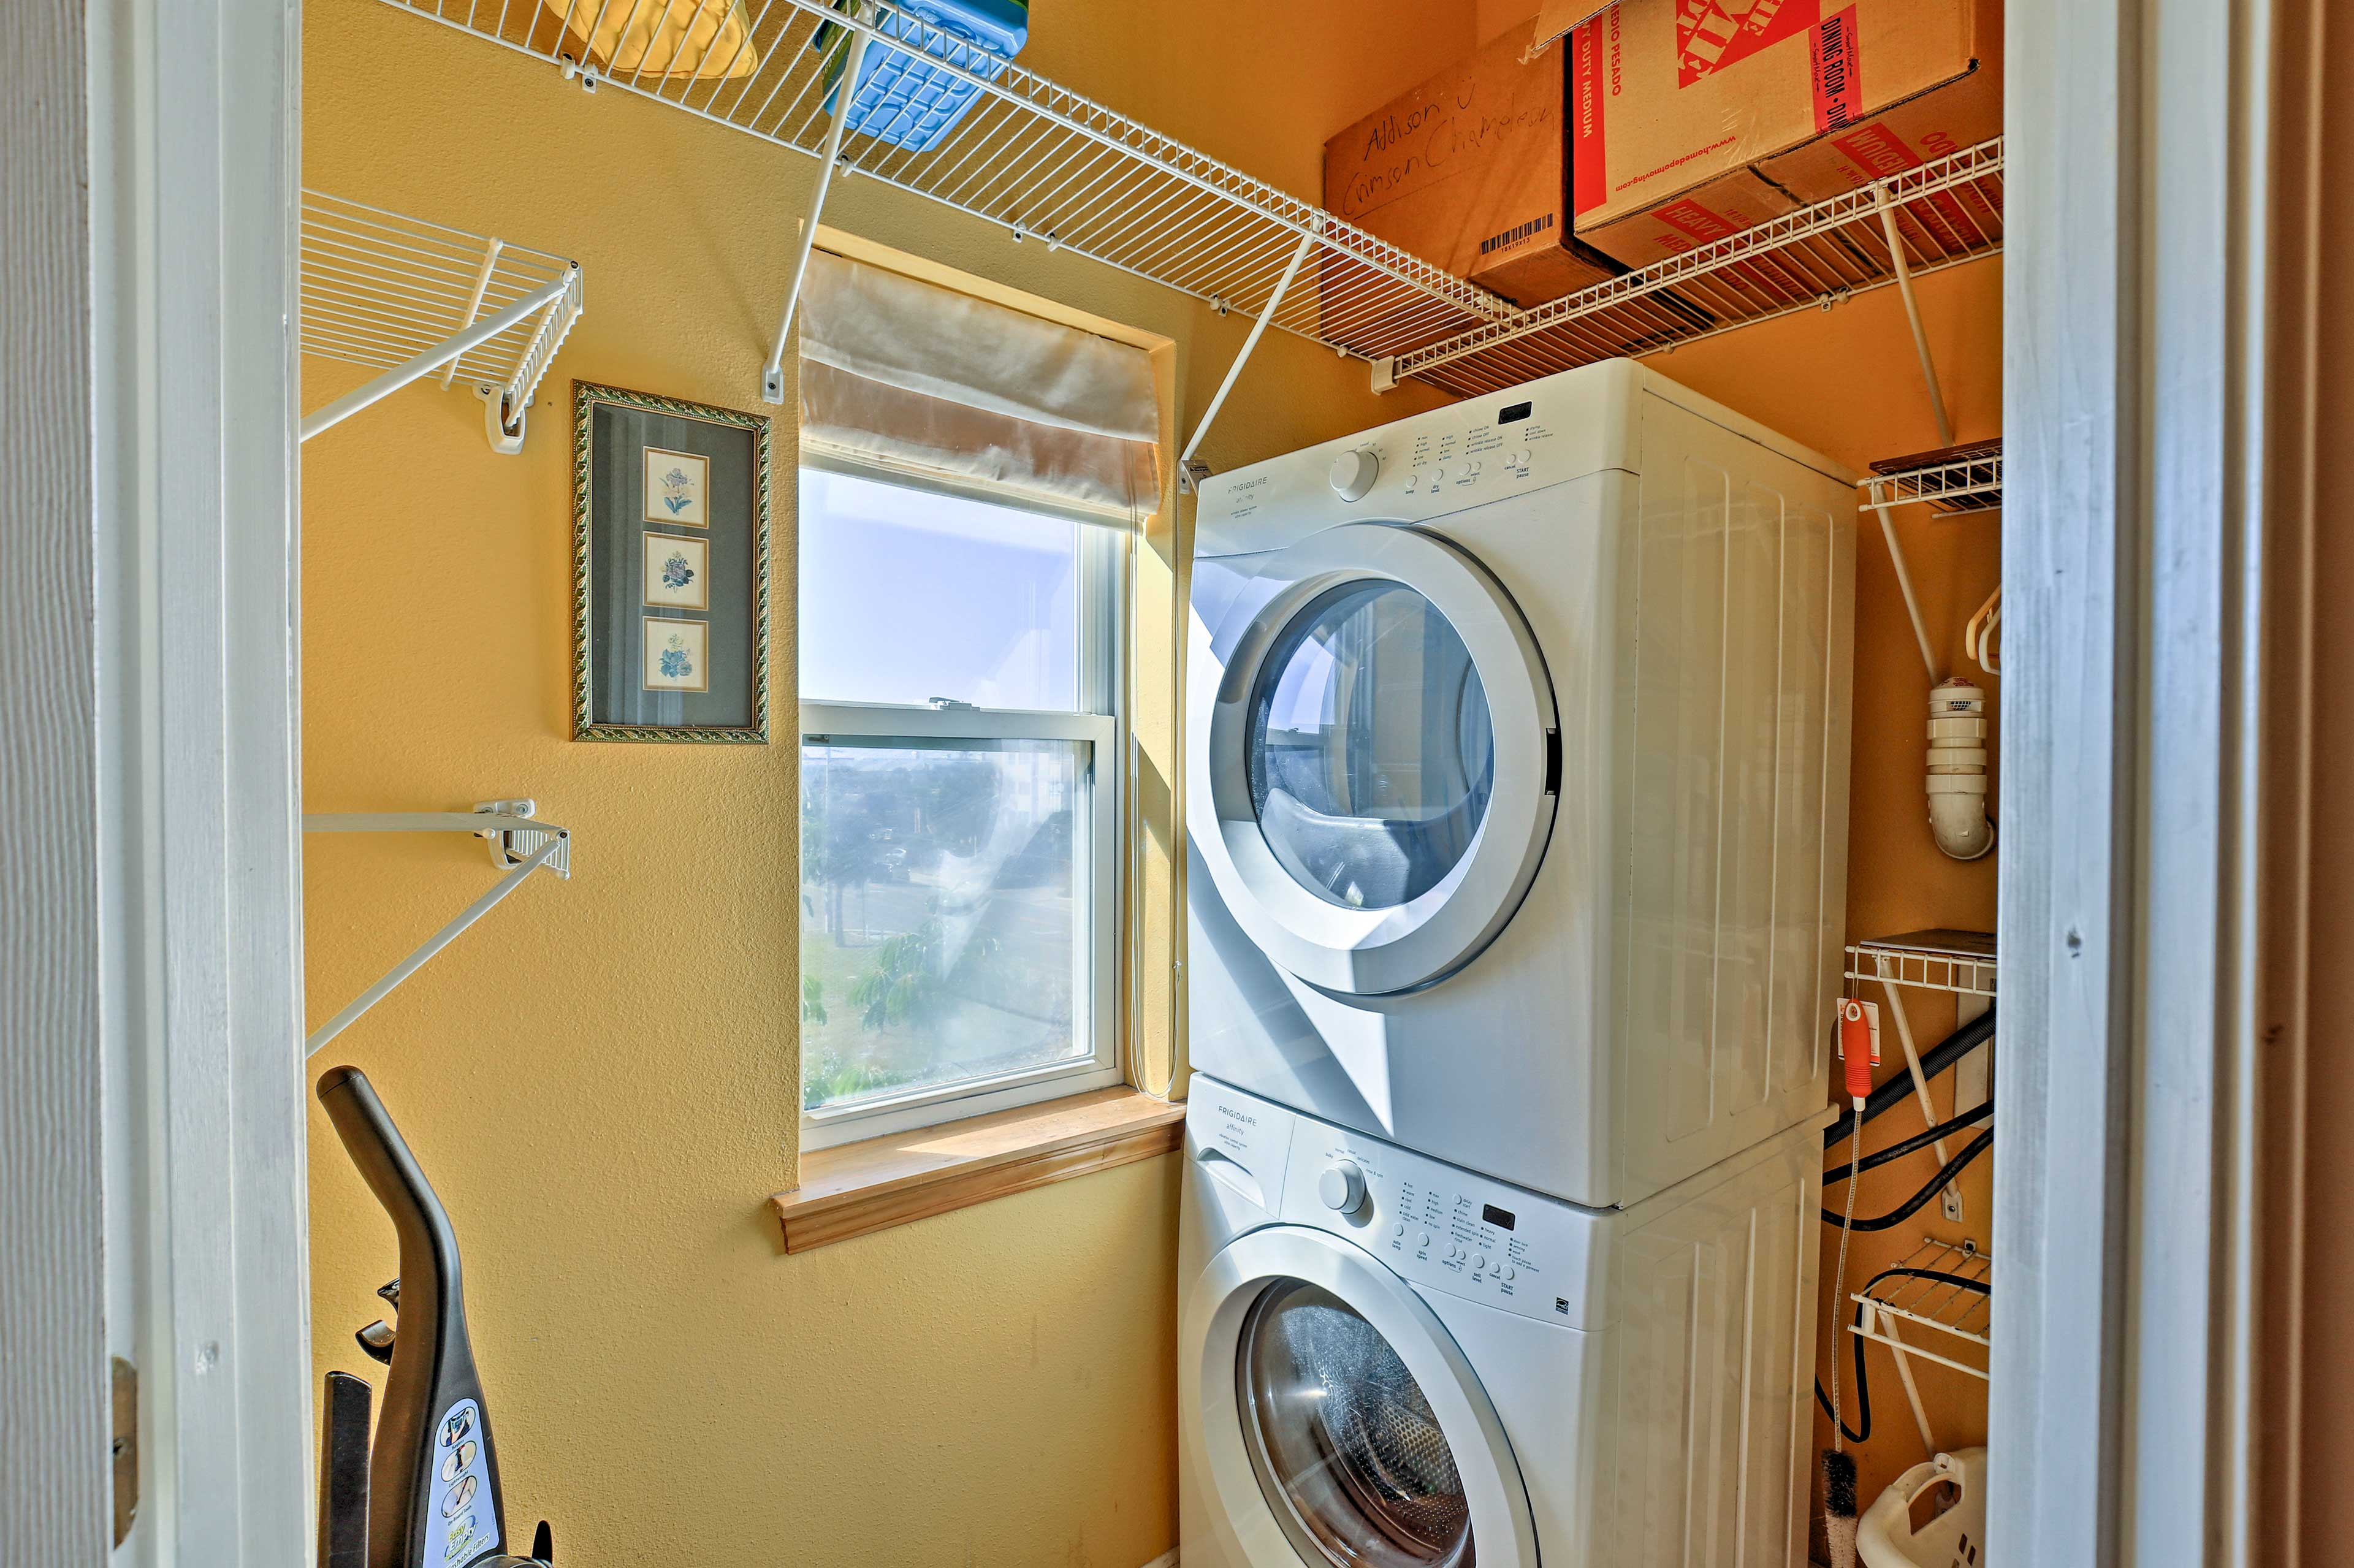 Keep those swimsuits clean with a quick wash in the in-unit laundry machines.